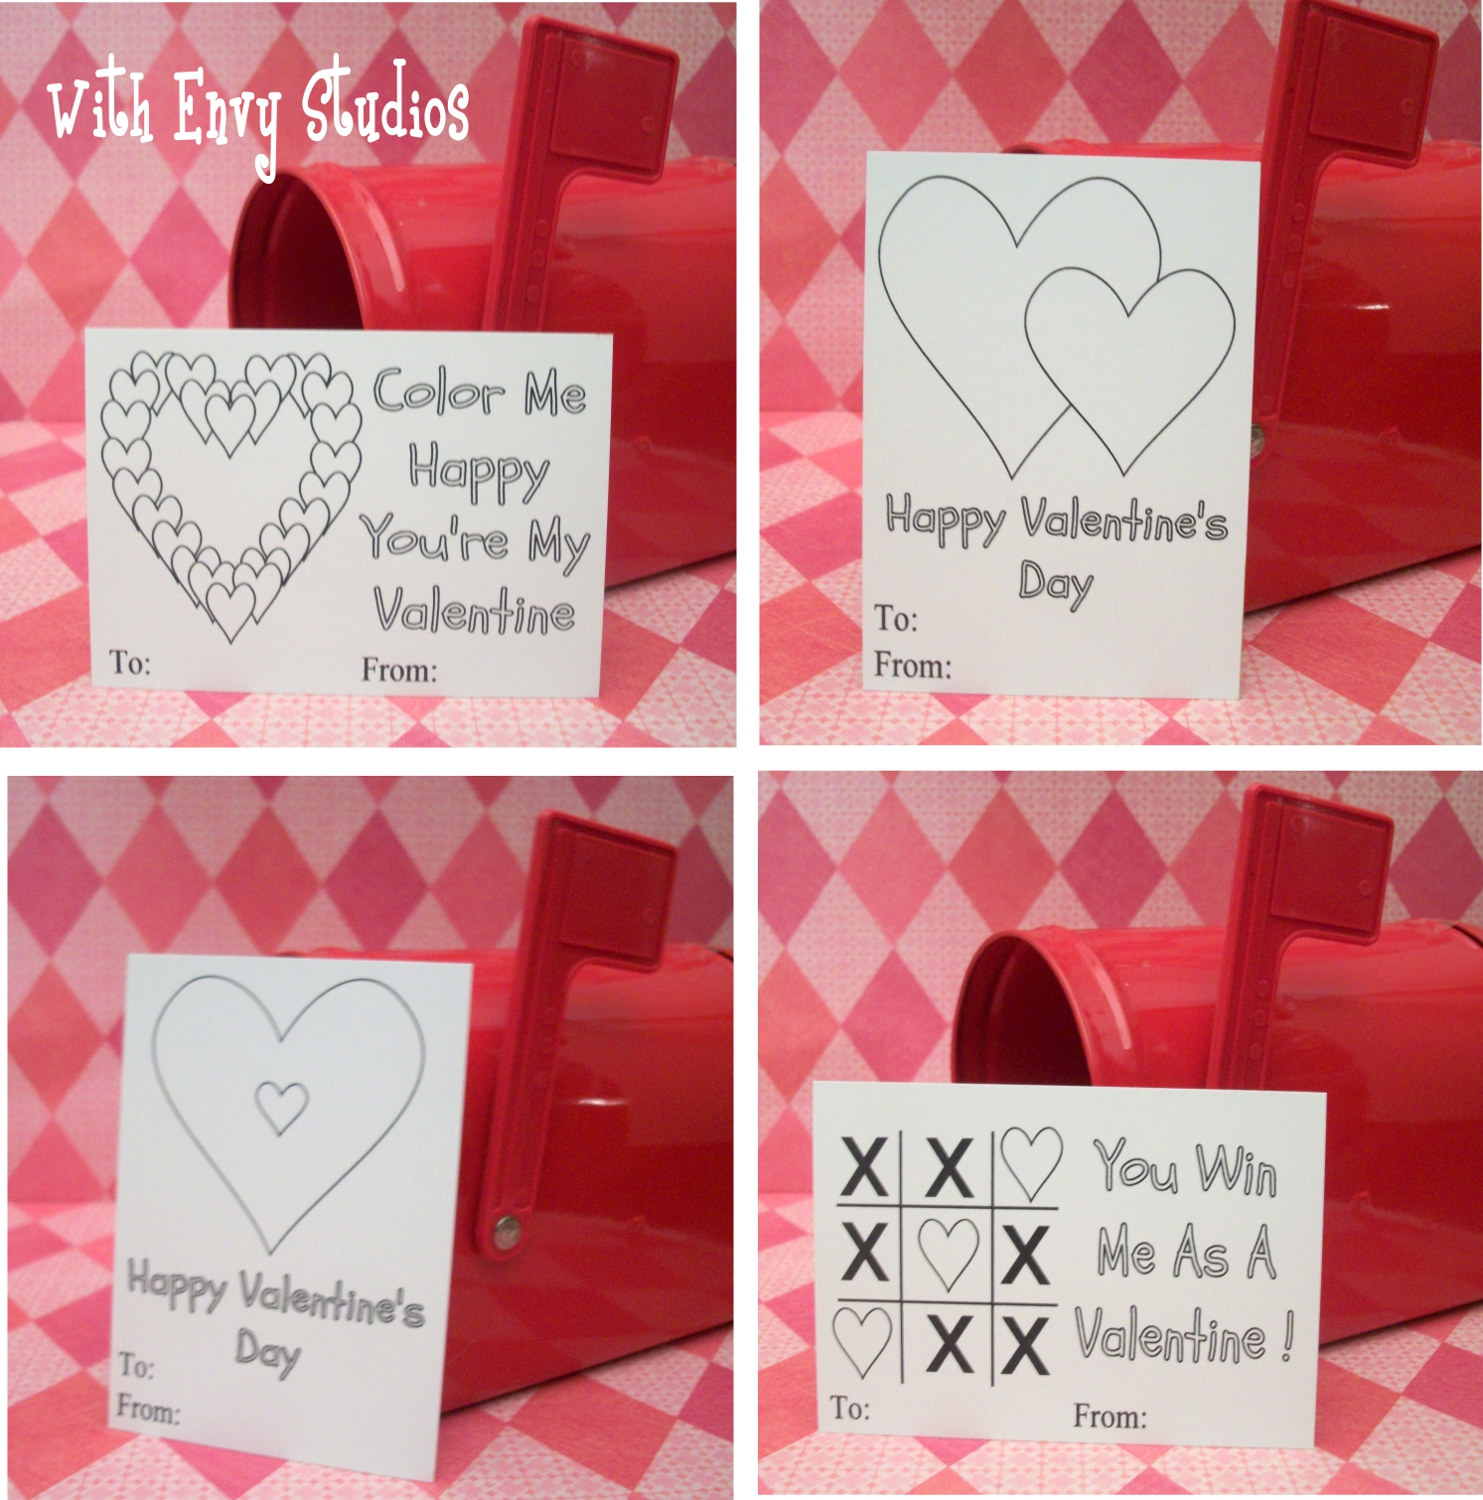 With Envy Studios Updated Free Valentine S Day Printables